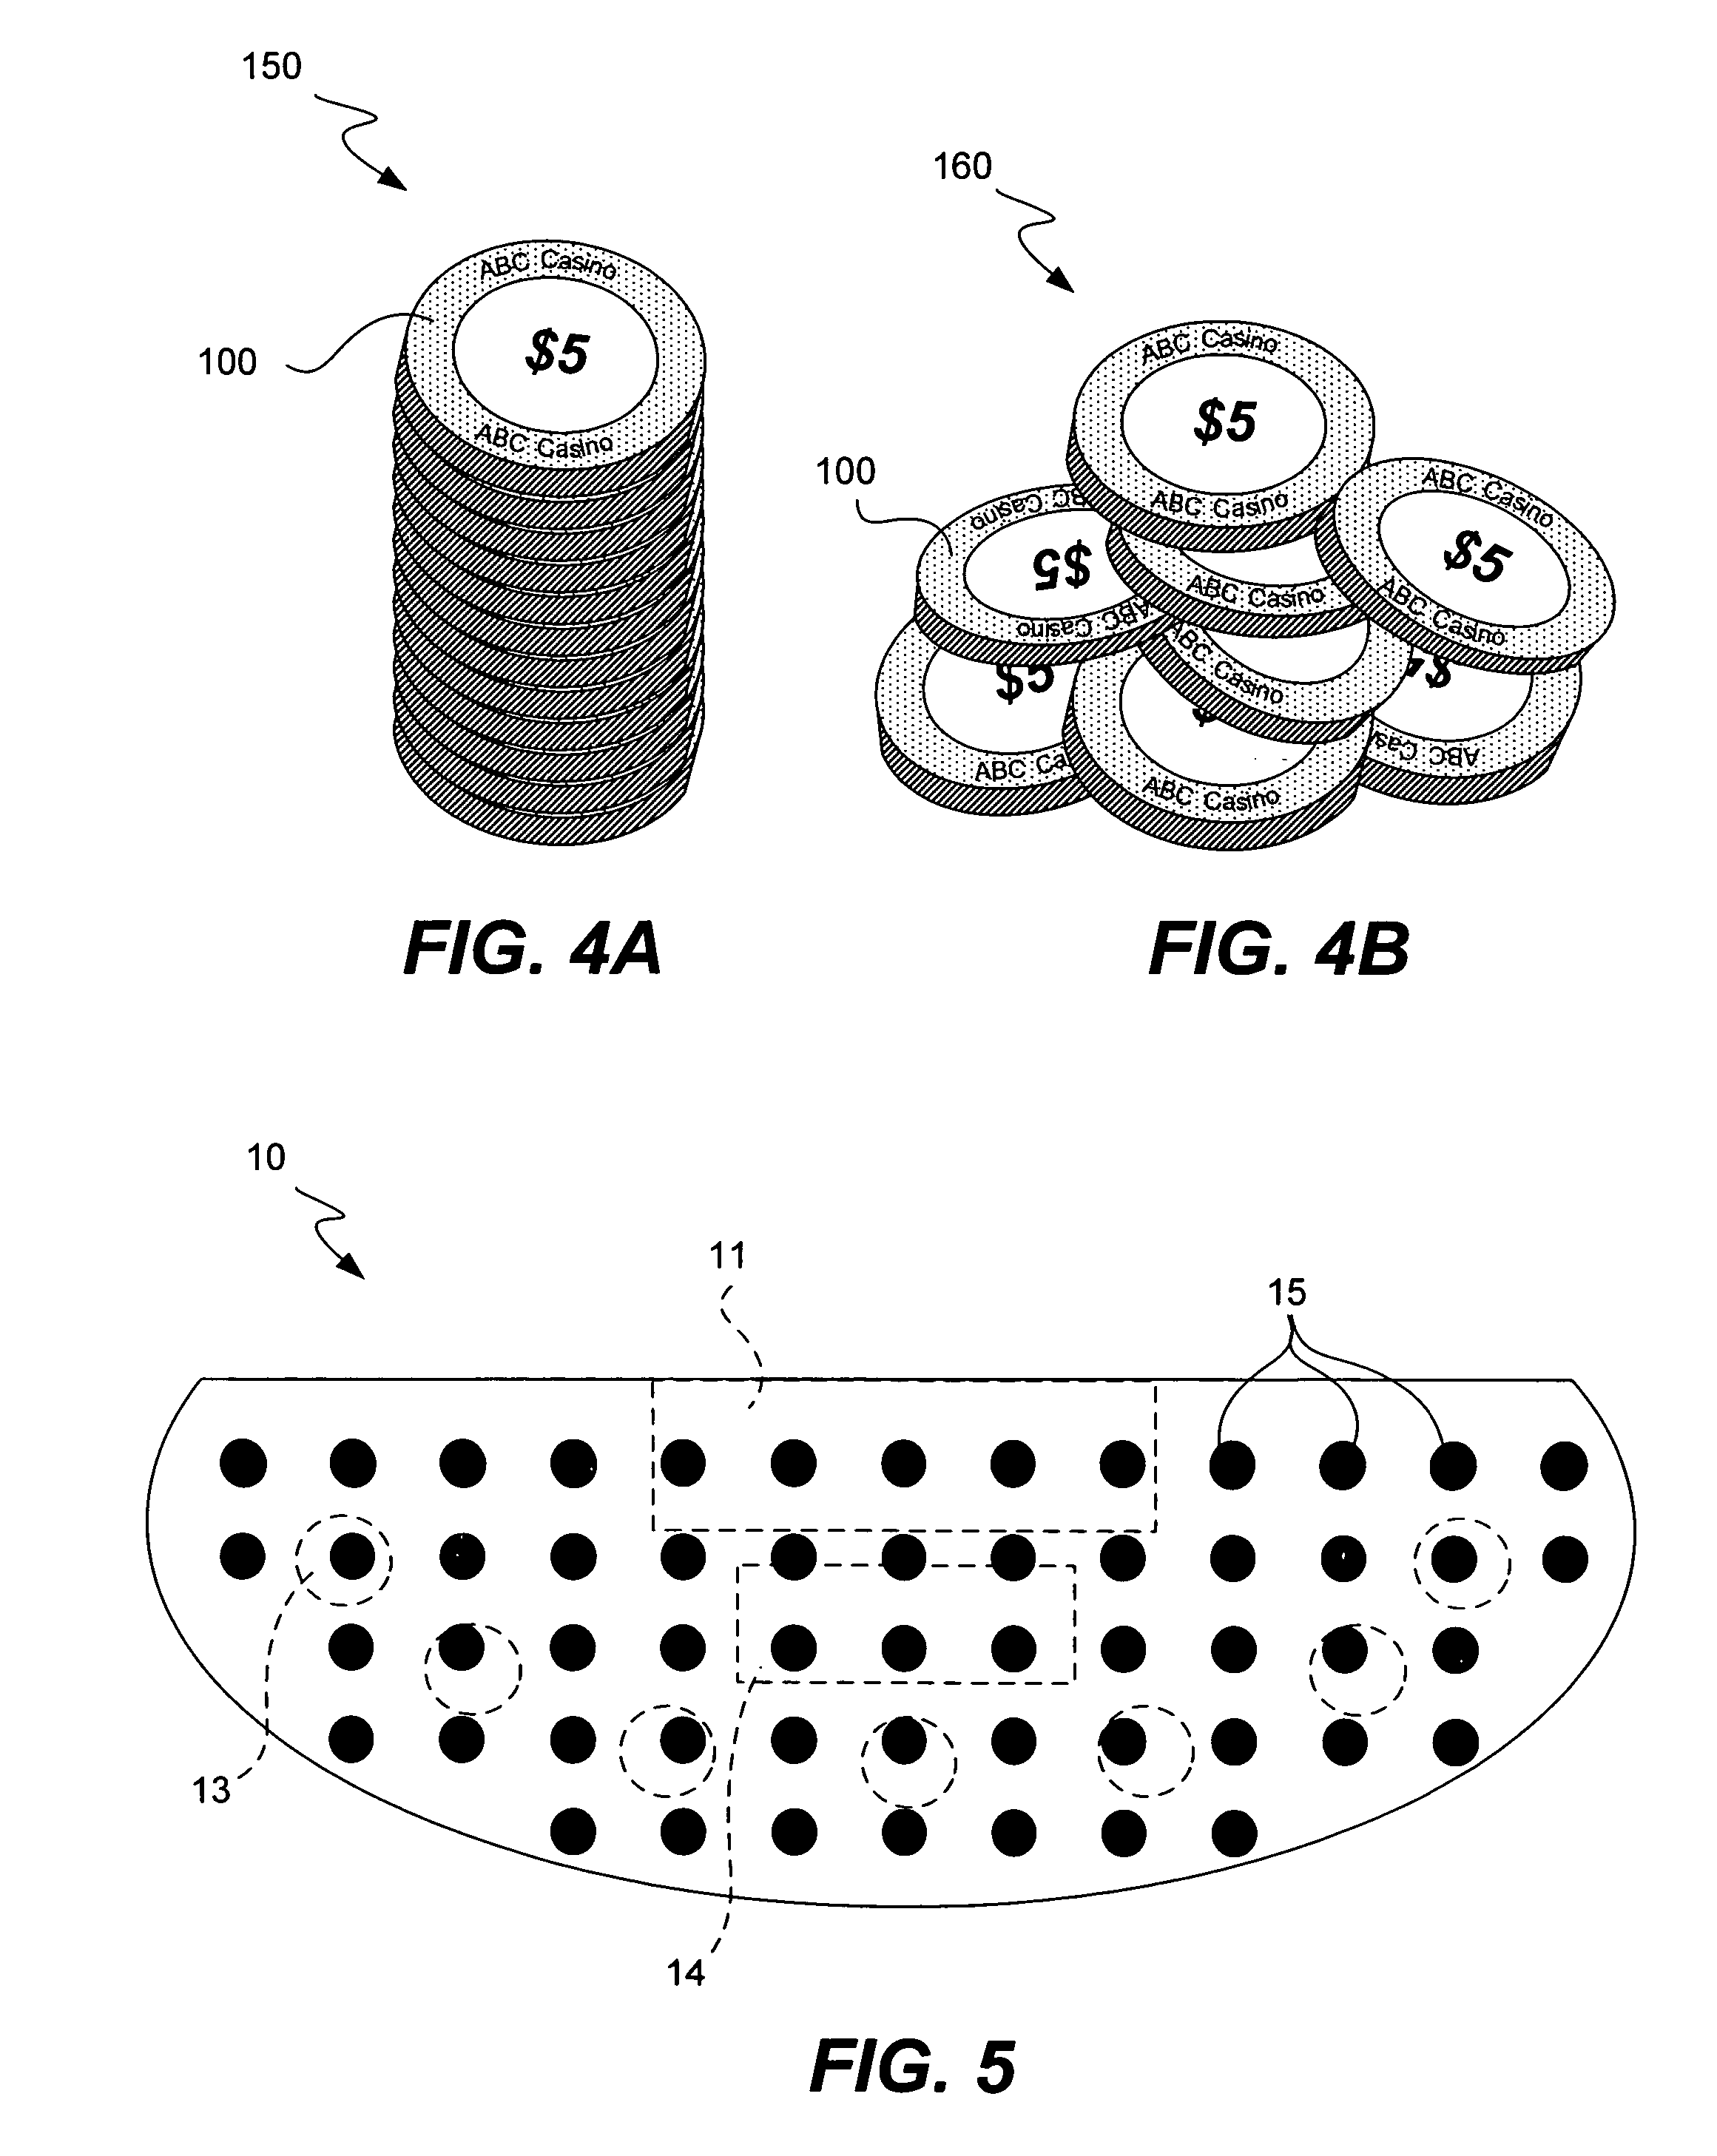 Rfid casino chip patents partial reinforcement gambling